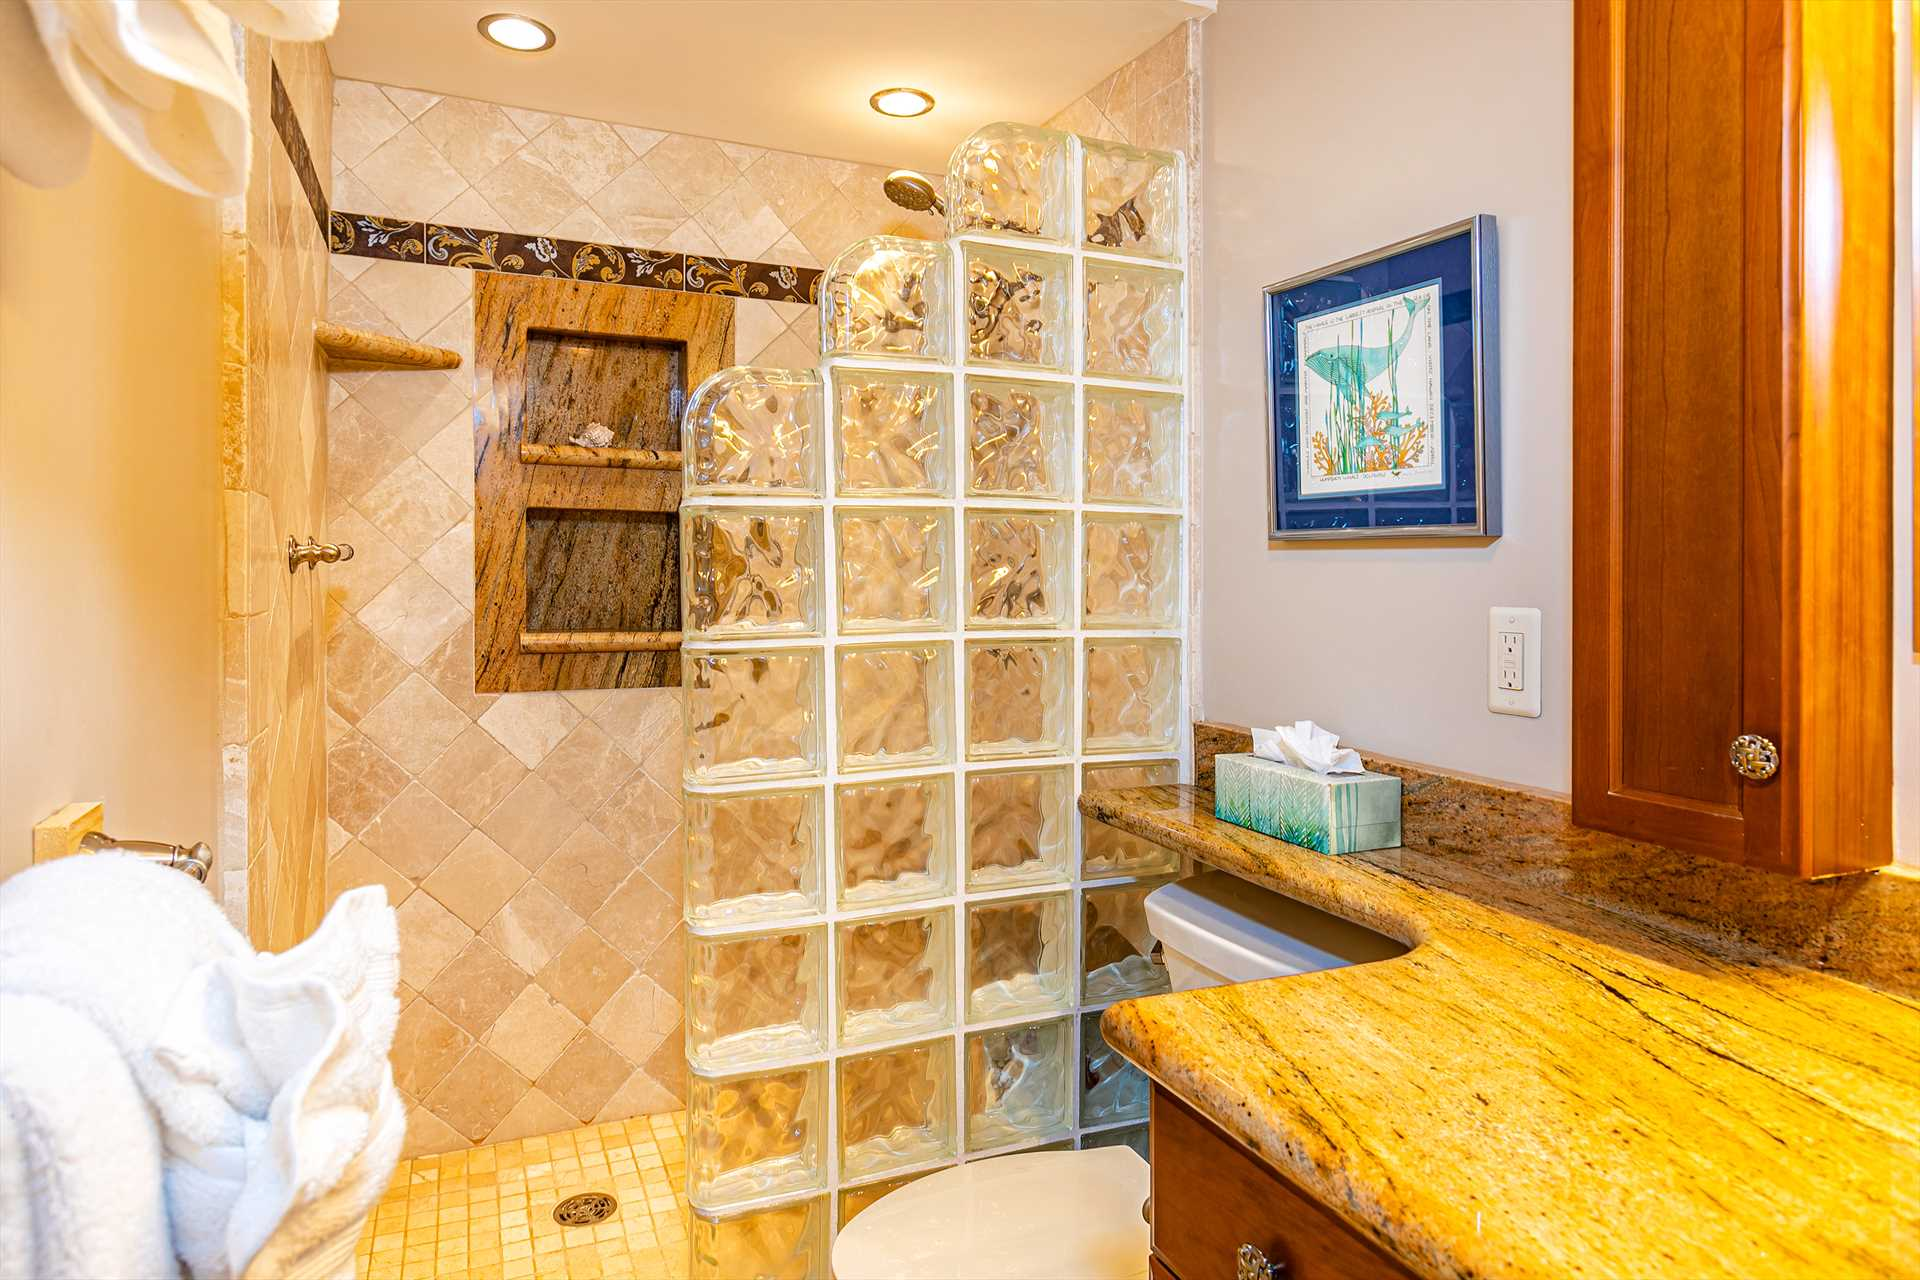 Master bathroom with glass block enclosed walk-in shower and